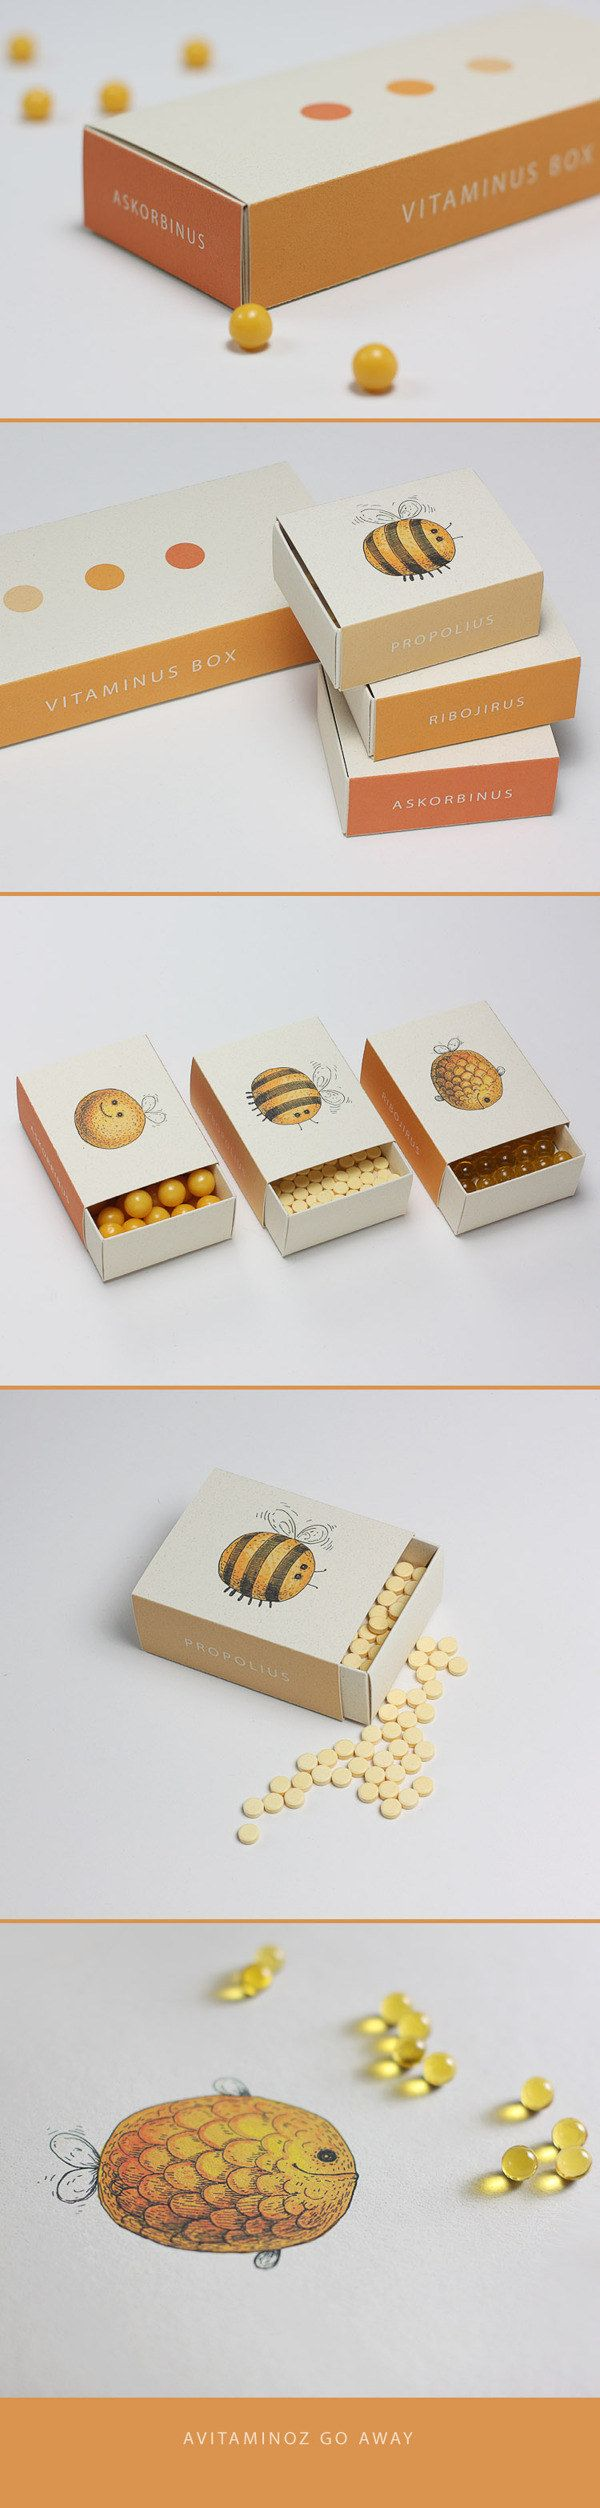 The cutest vitamin boxes imaginable. | 34 Insanely Cute Packaging Ideas You Need To See